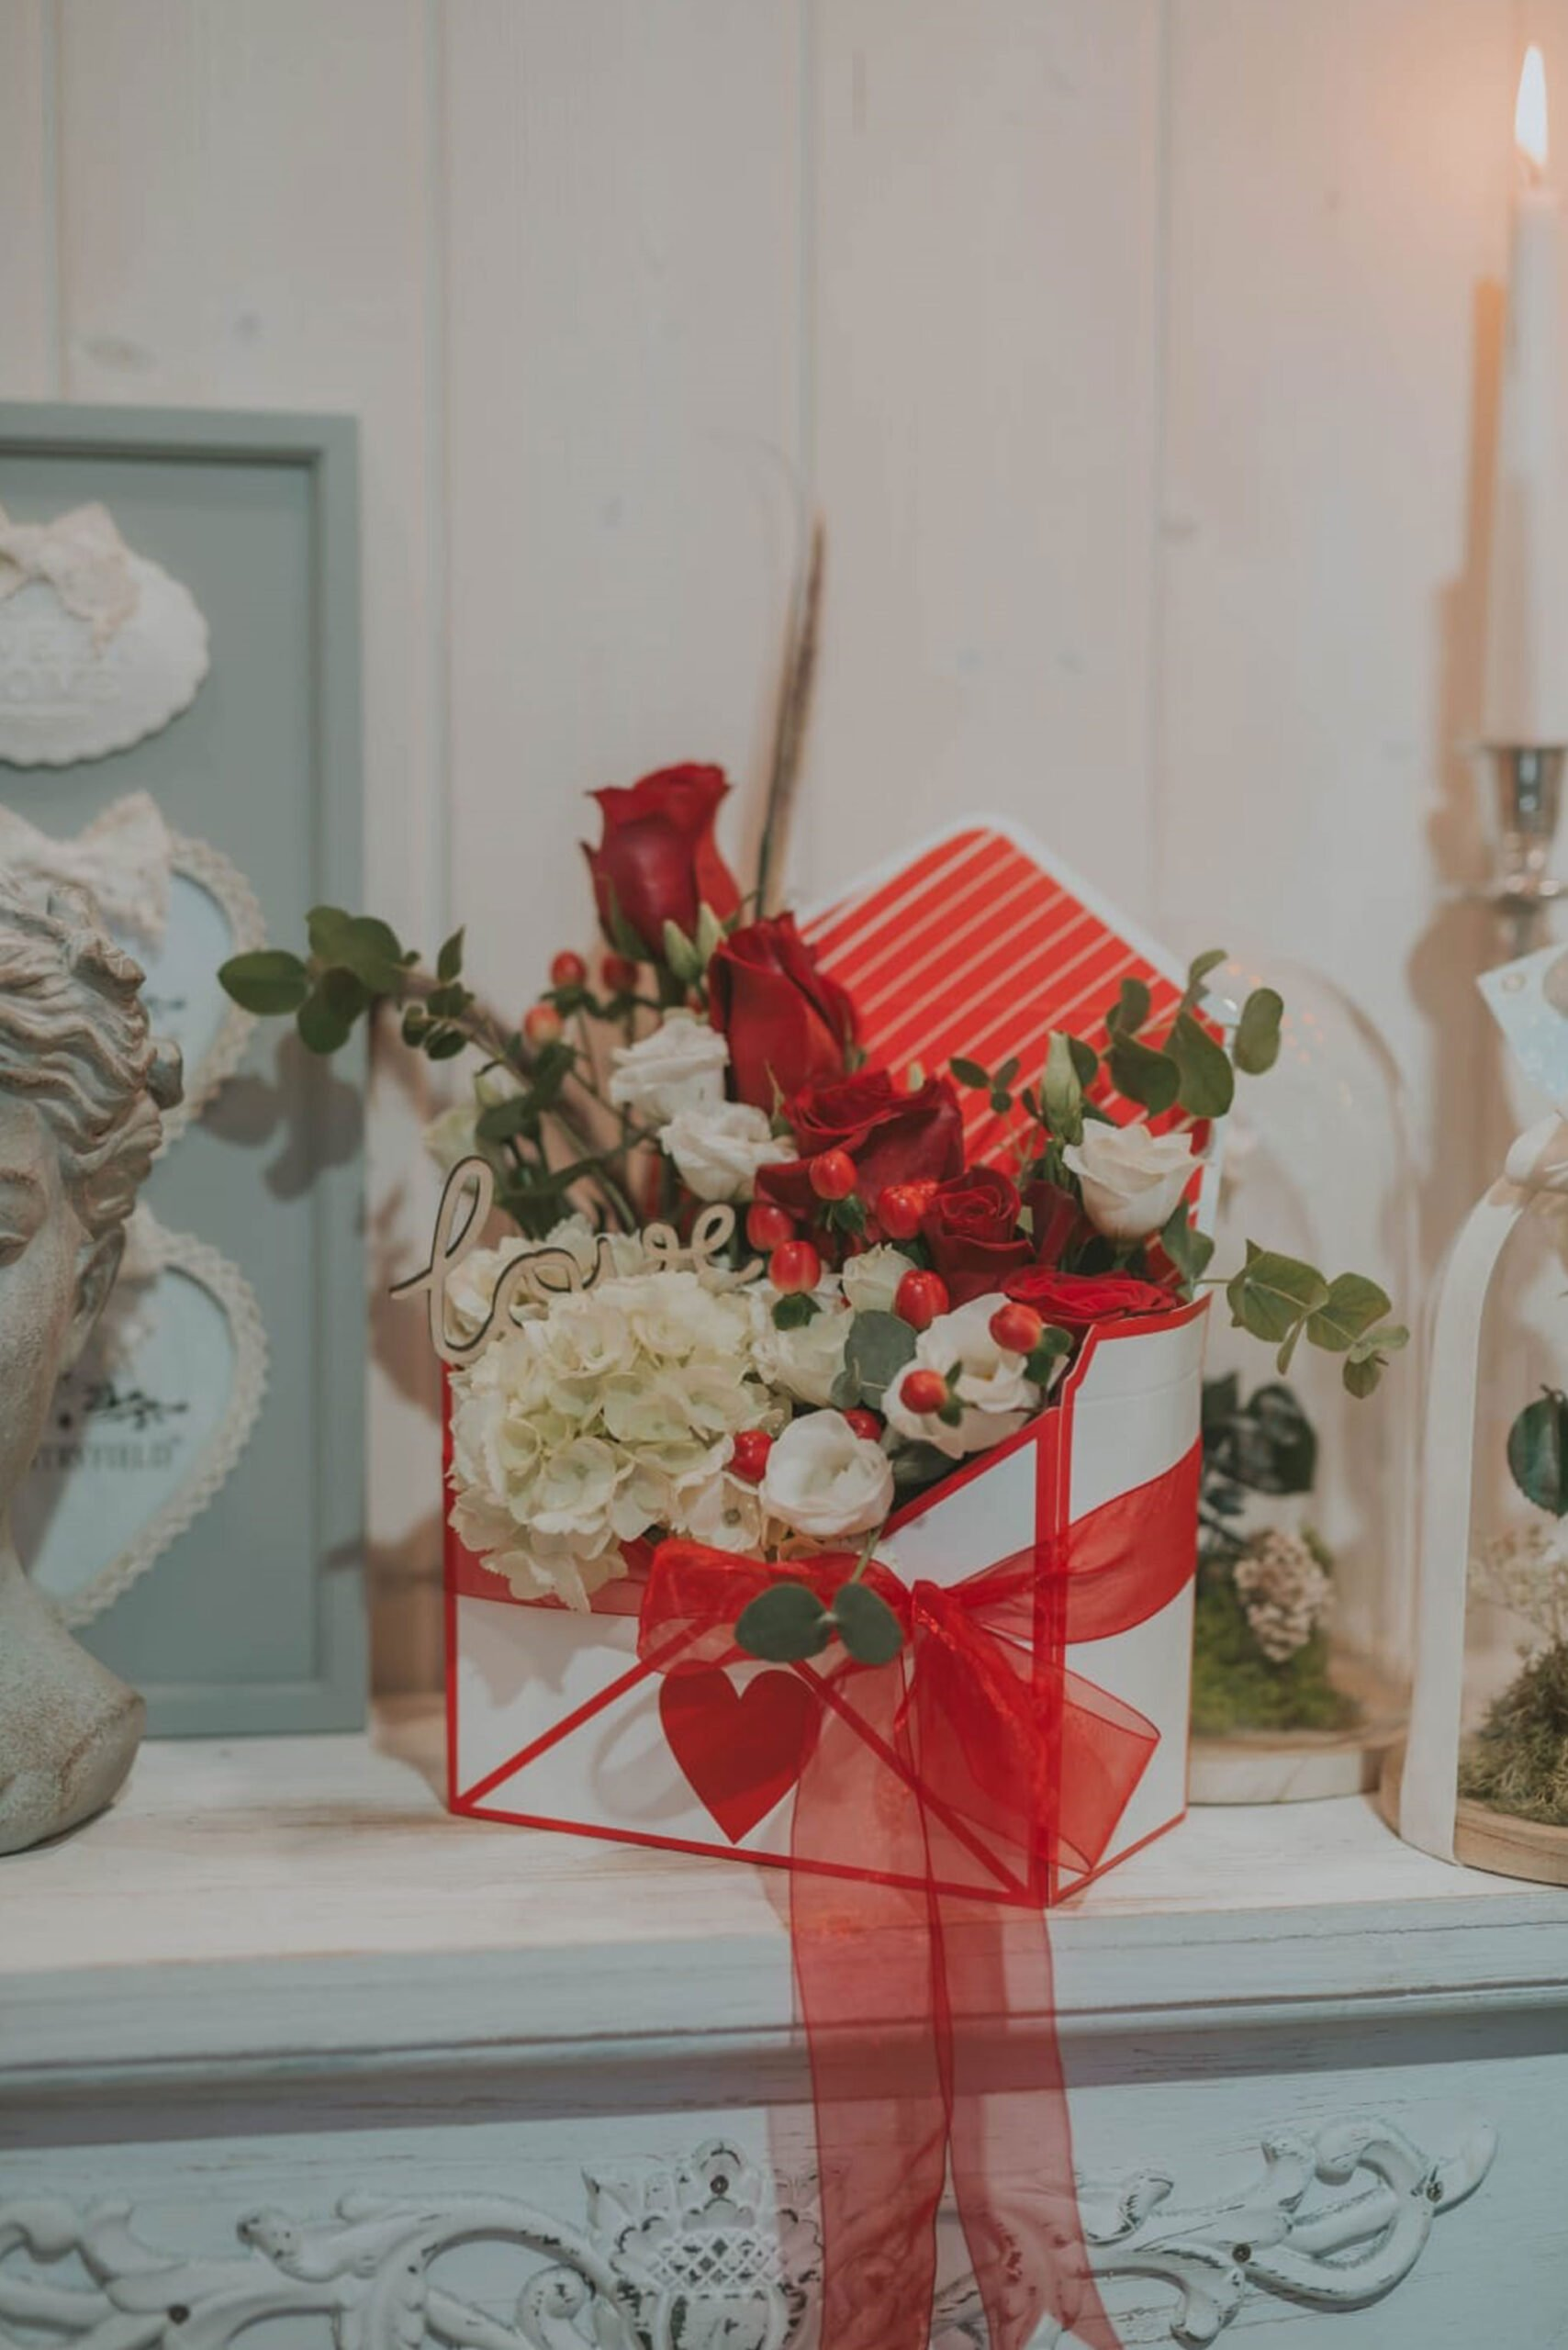 Valentine's Gifts in Dénia - Weddings and Flowers